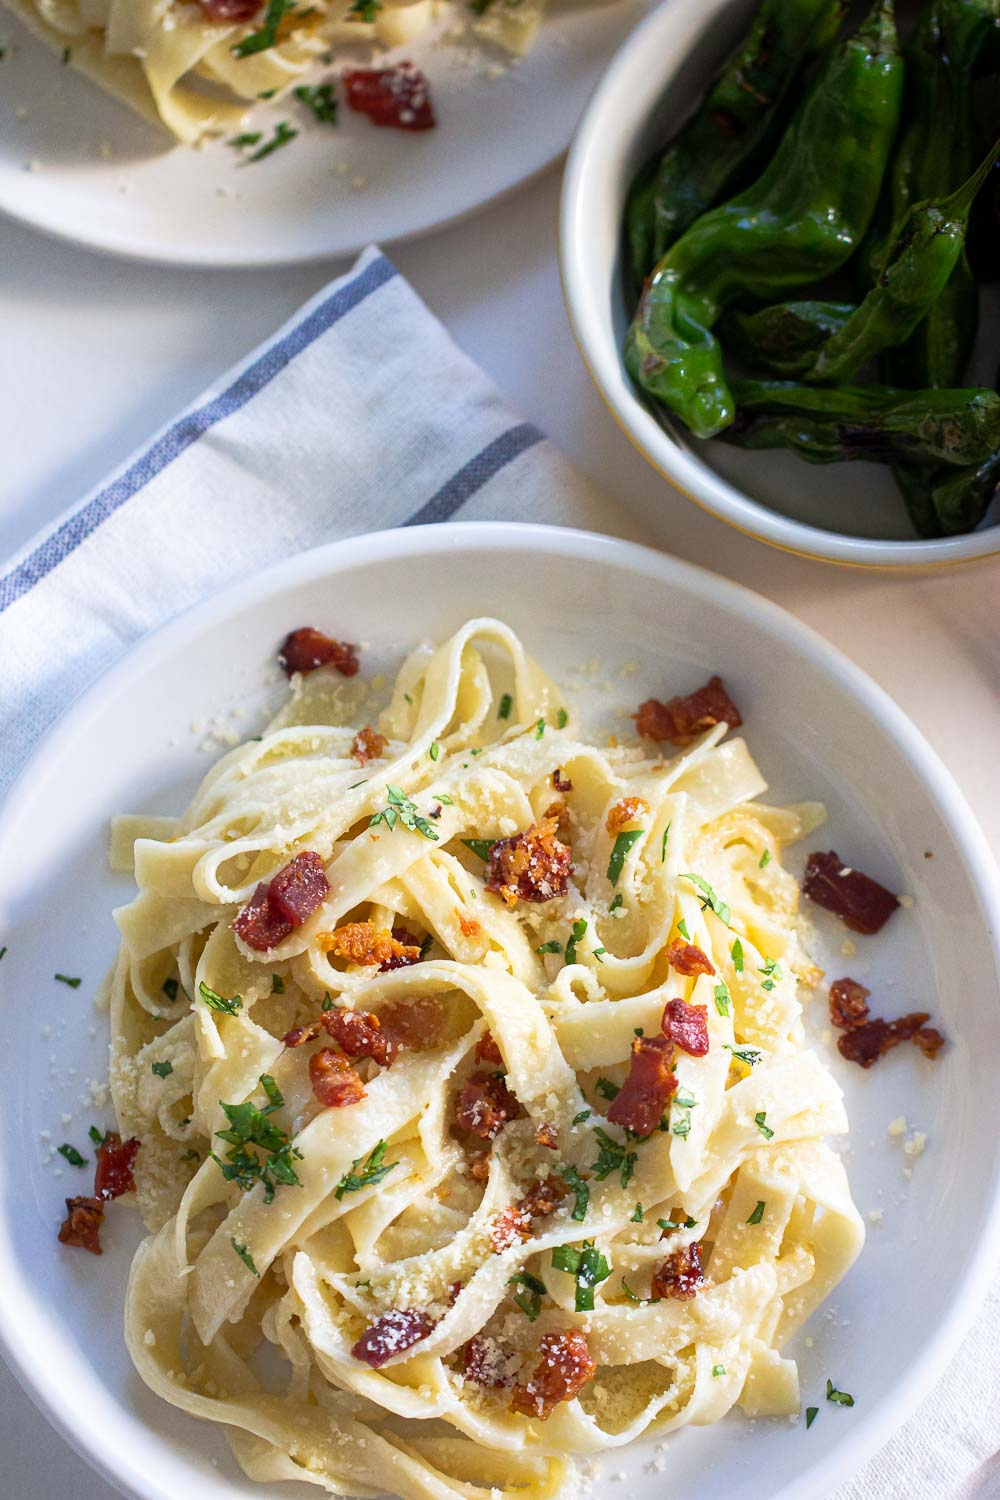 This creamy pear and mascarpone pappardelle get its kick from pear tossed in mascarpone cheese and crispy prosciutto. Ready on the table in 15 minutes and it's perfect for a quick weeknight recipe.